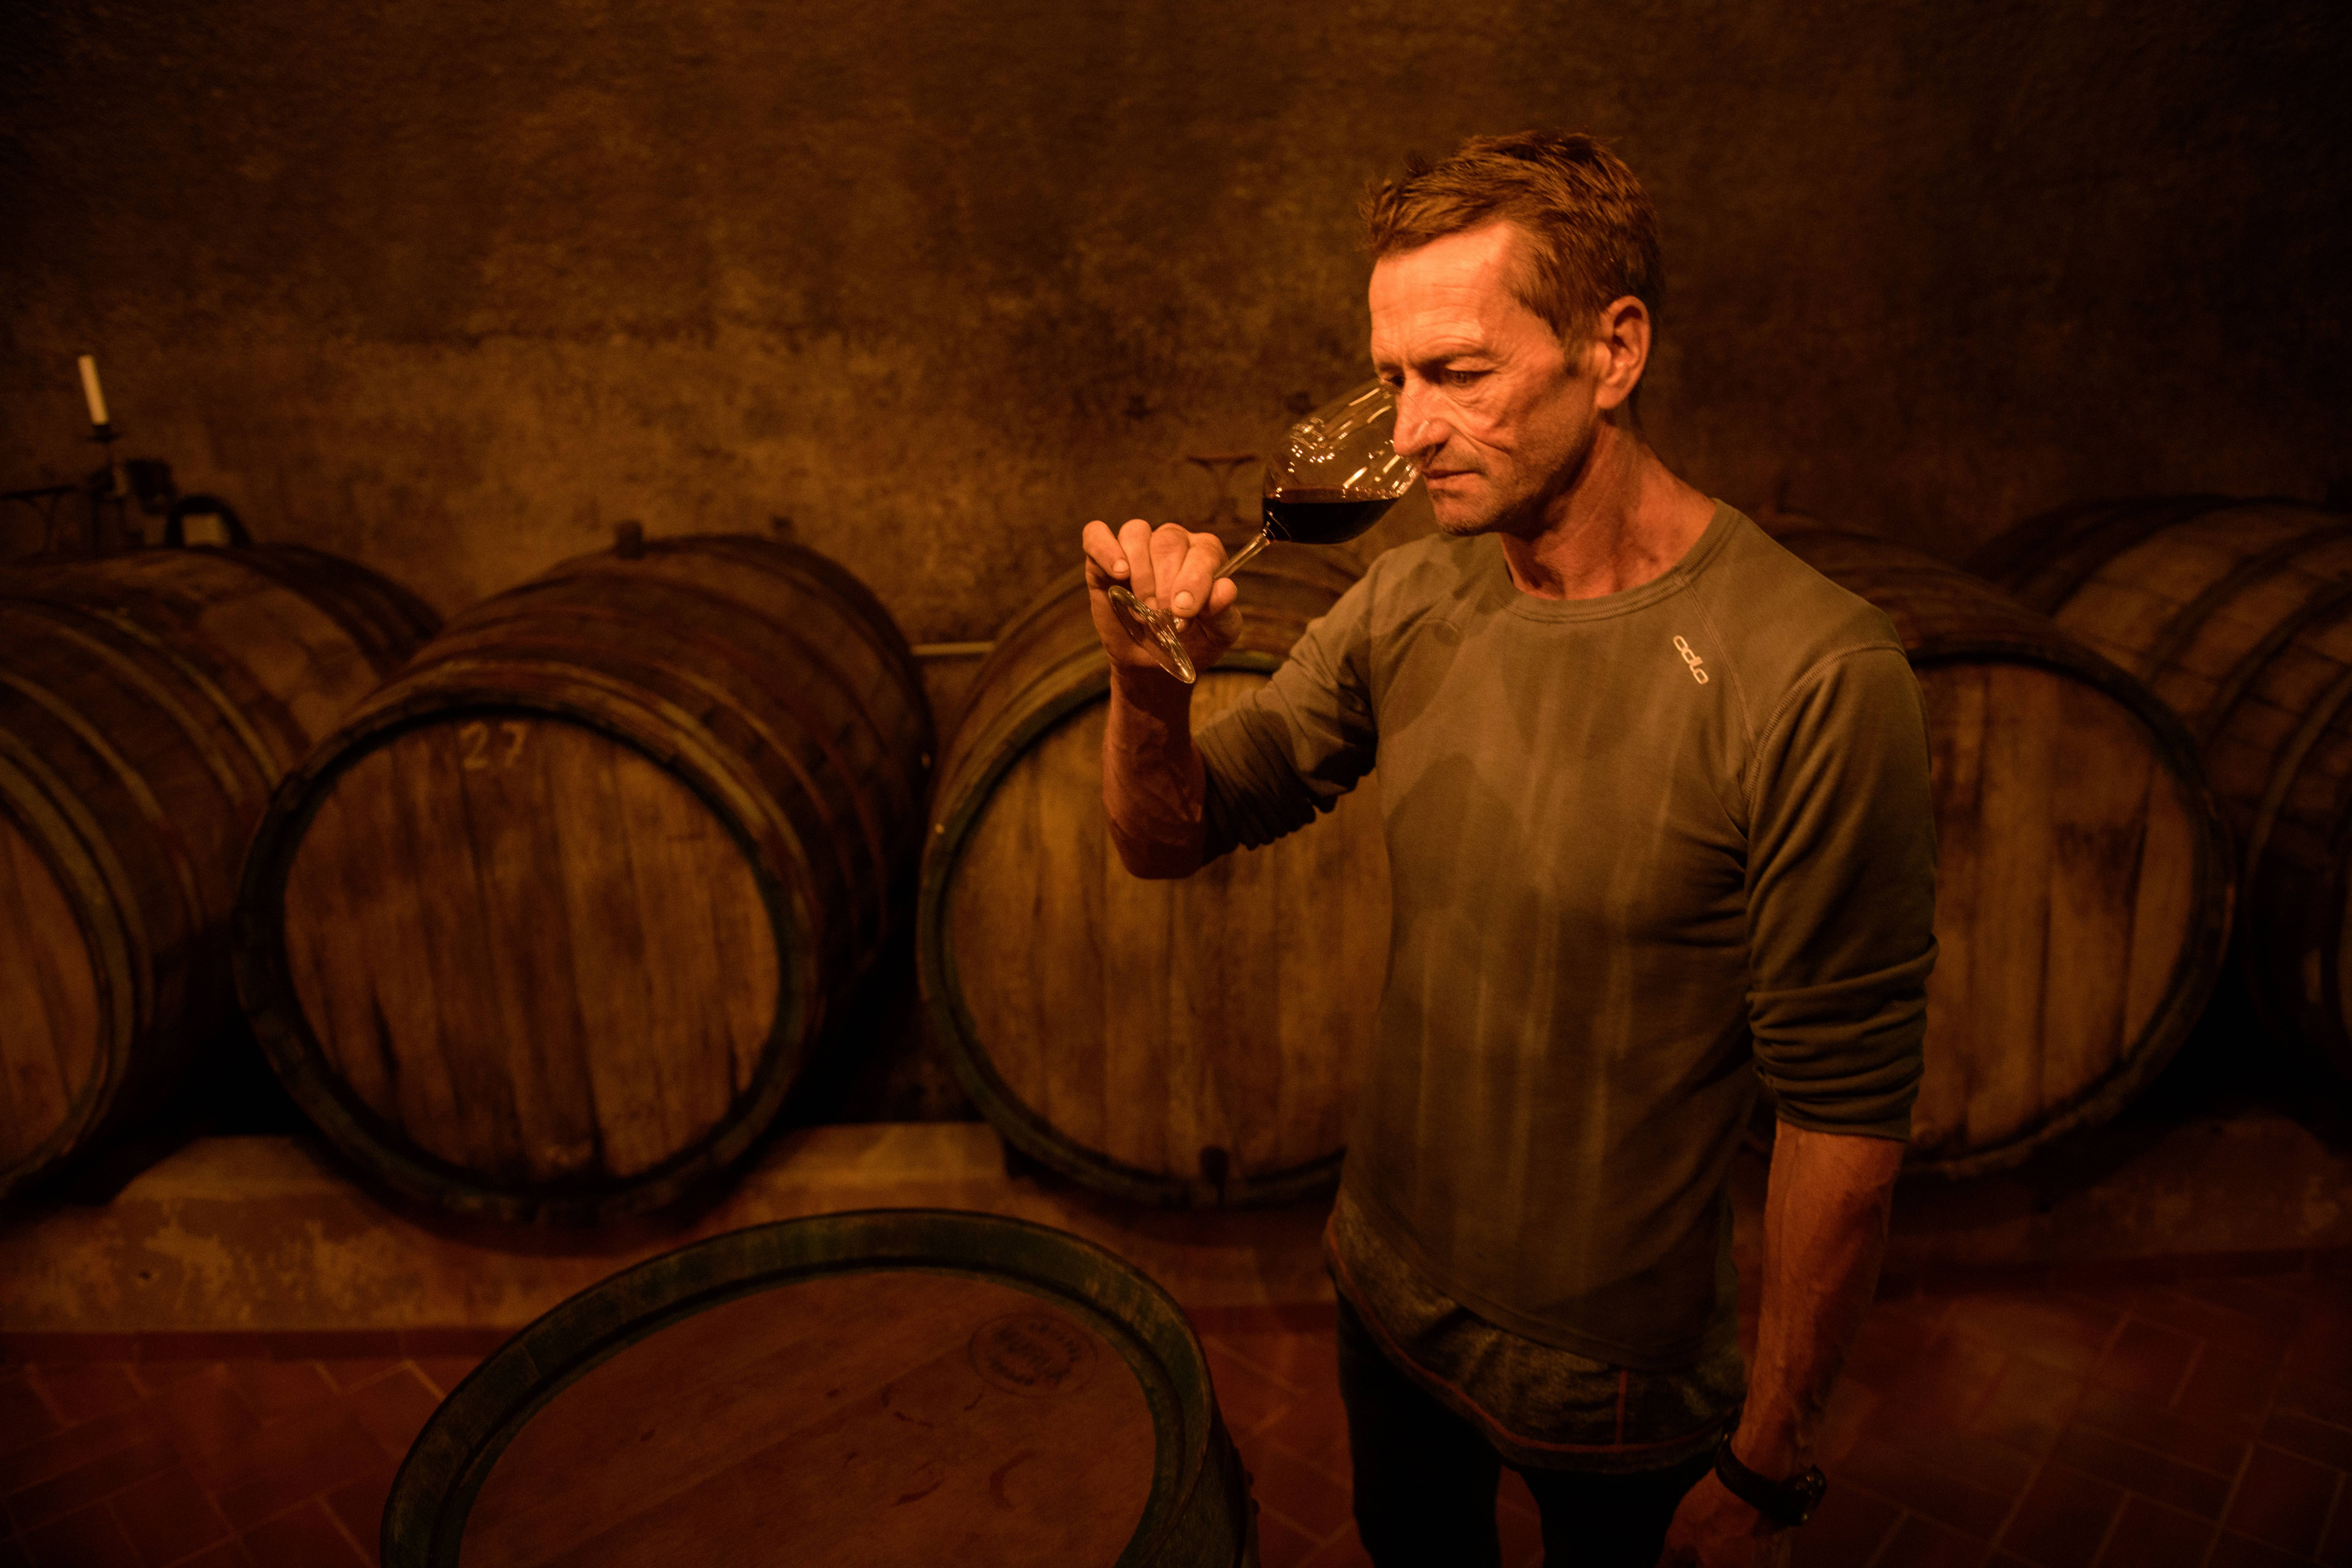 Winemakers Harvest Grapes In Mosel Region